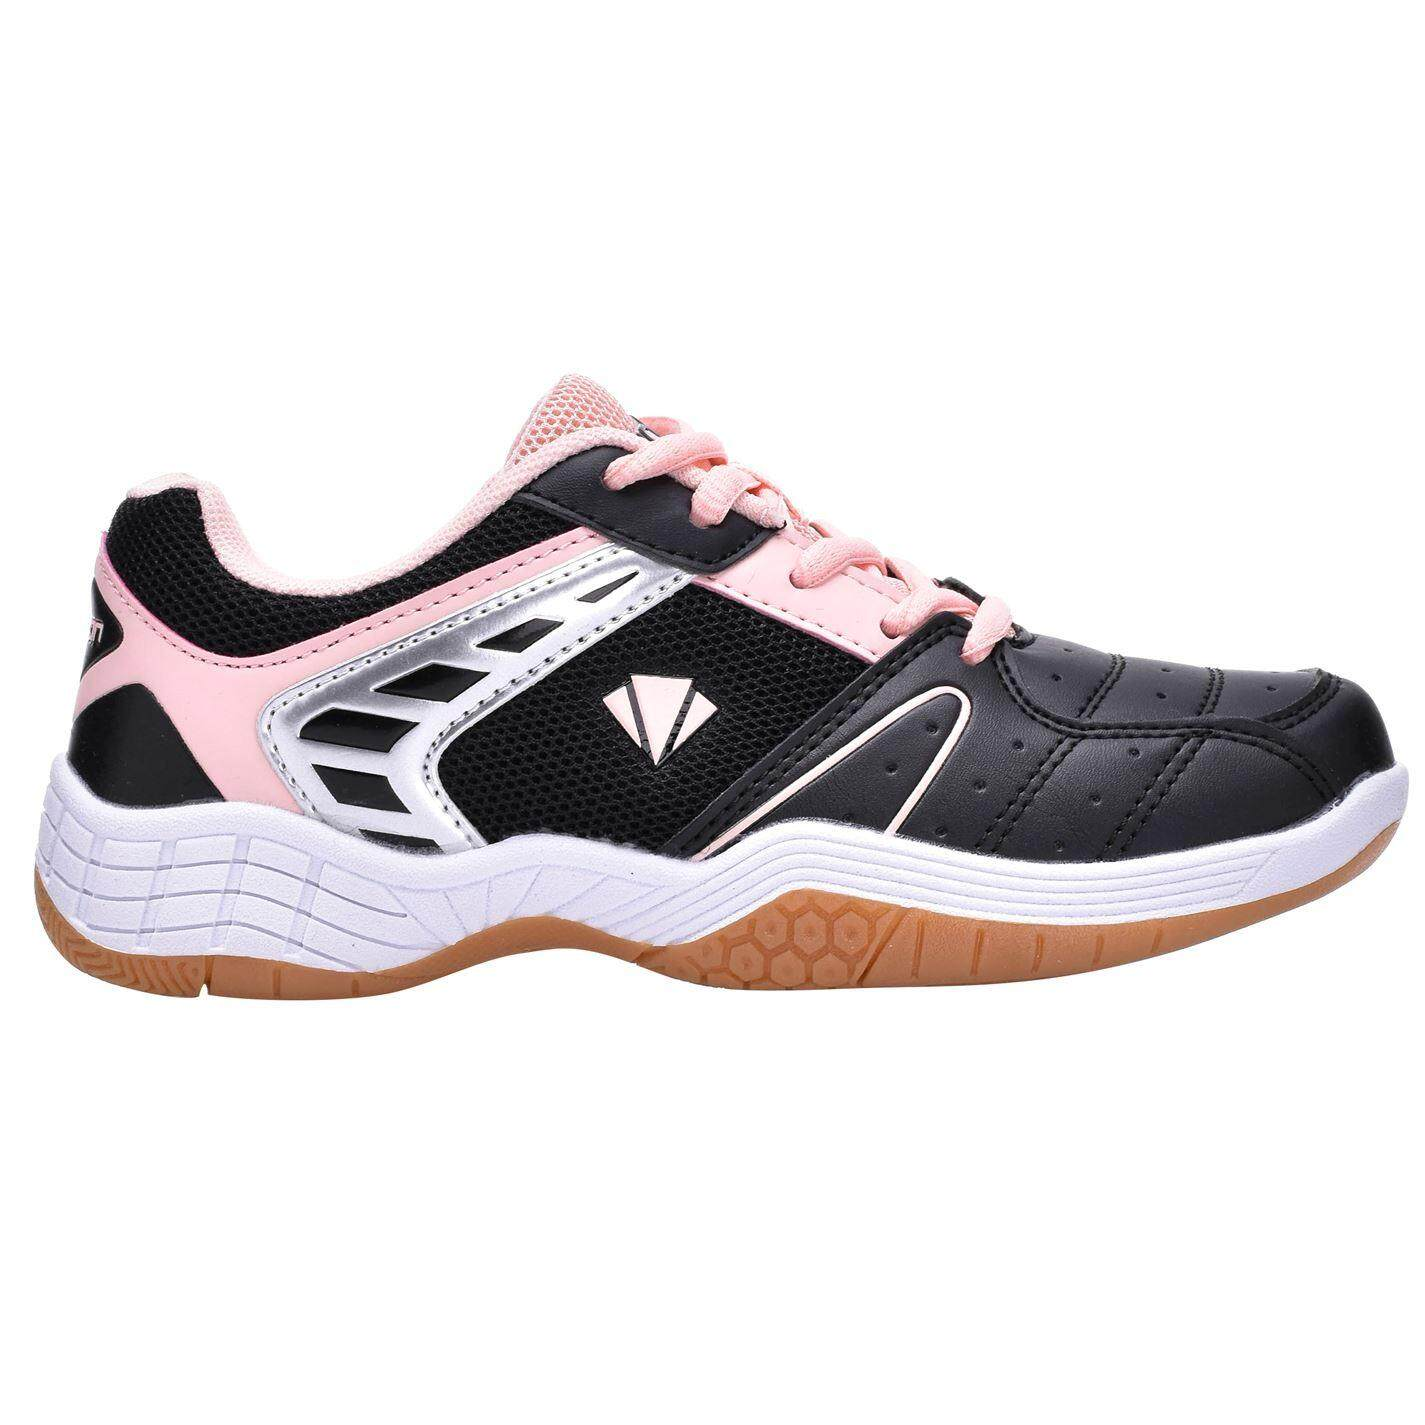 Carlton Womens Cc 005w (black/peach) By Sports Direct Mst Sdn Bhd.